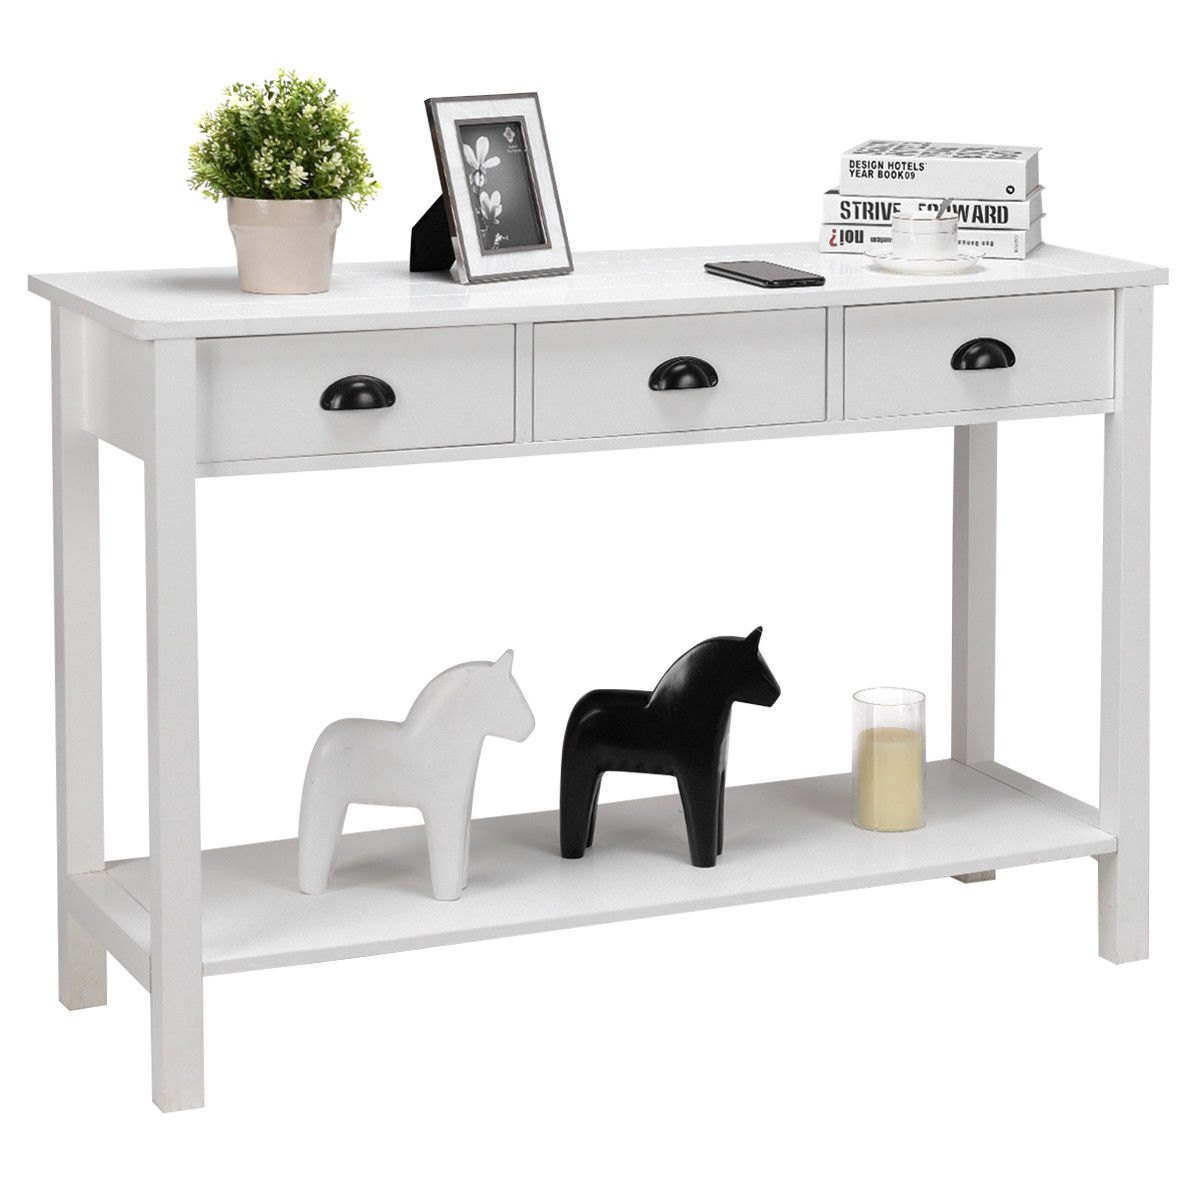 way console table hall side desk accent with drawers shelf entryway white set tables round drum end mid century bar bedside charging station kohls wall clocks large umbrella seat